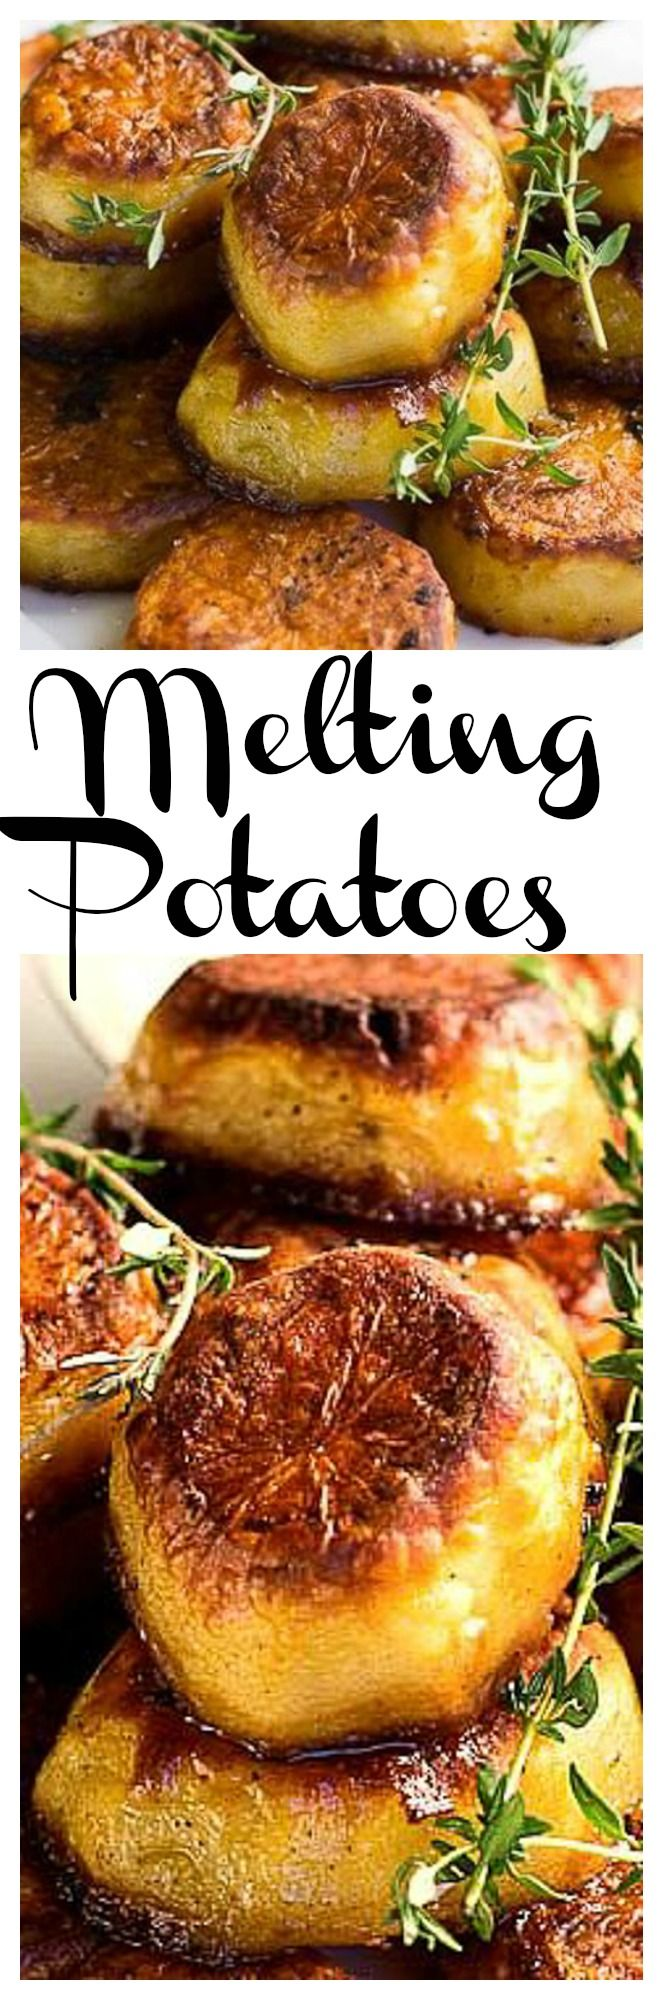 buy online fashion Melting Potatoes - crunchy on the outside and creamy on the inside with the most amazing flavor.